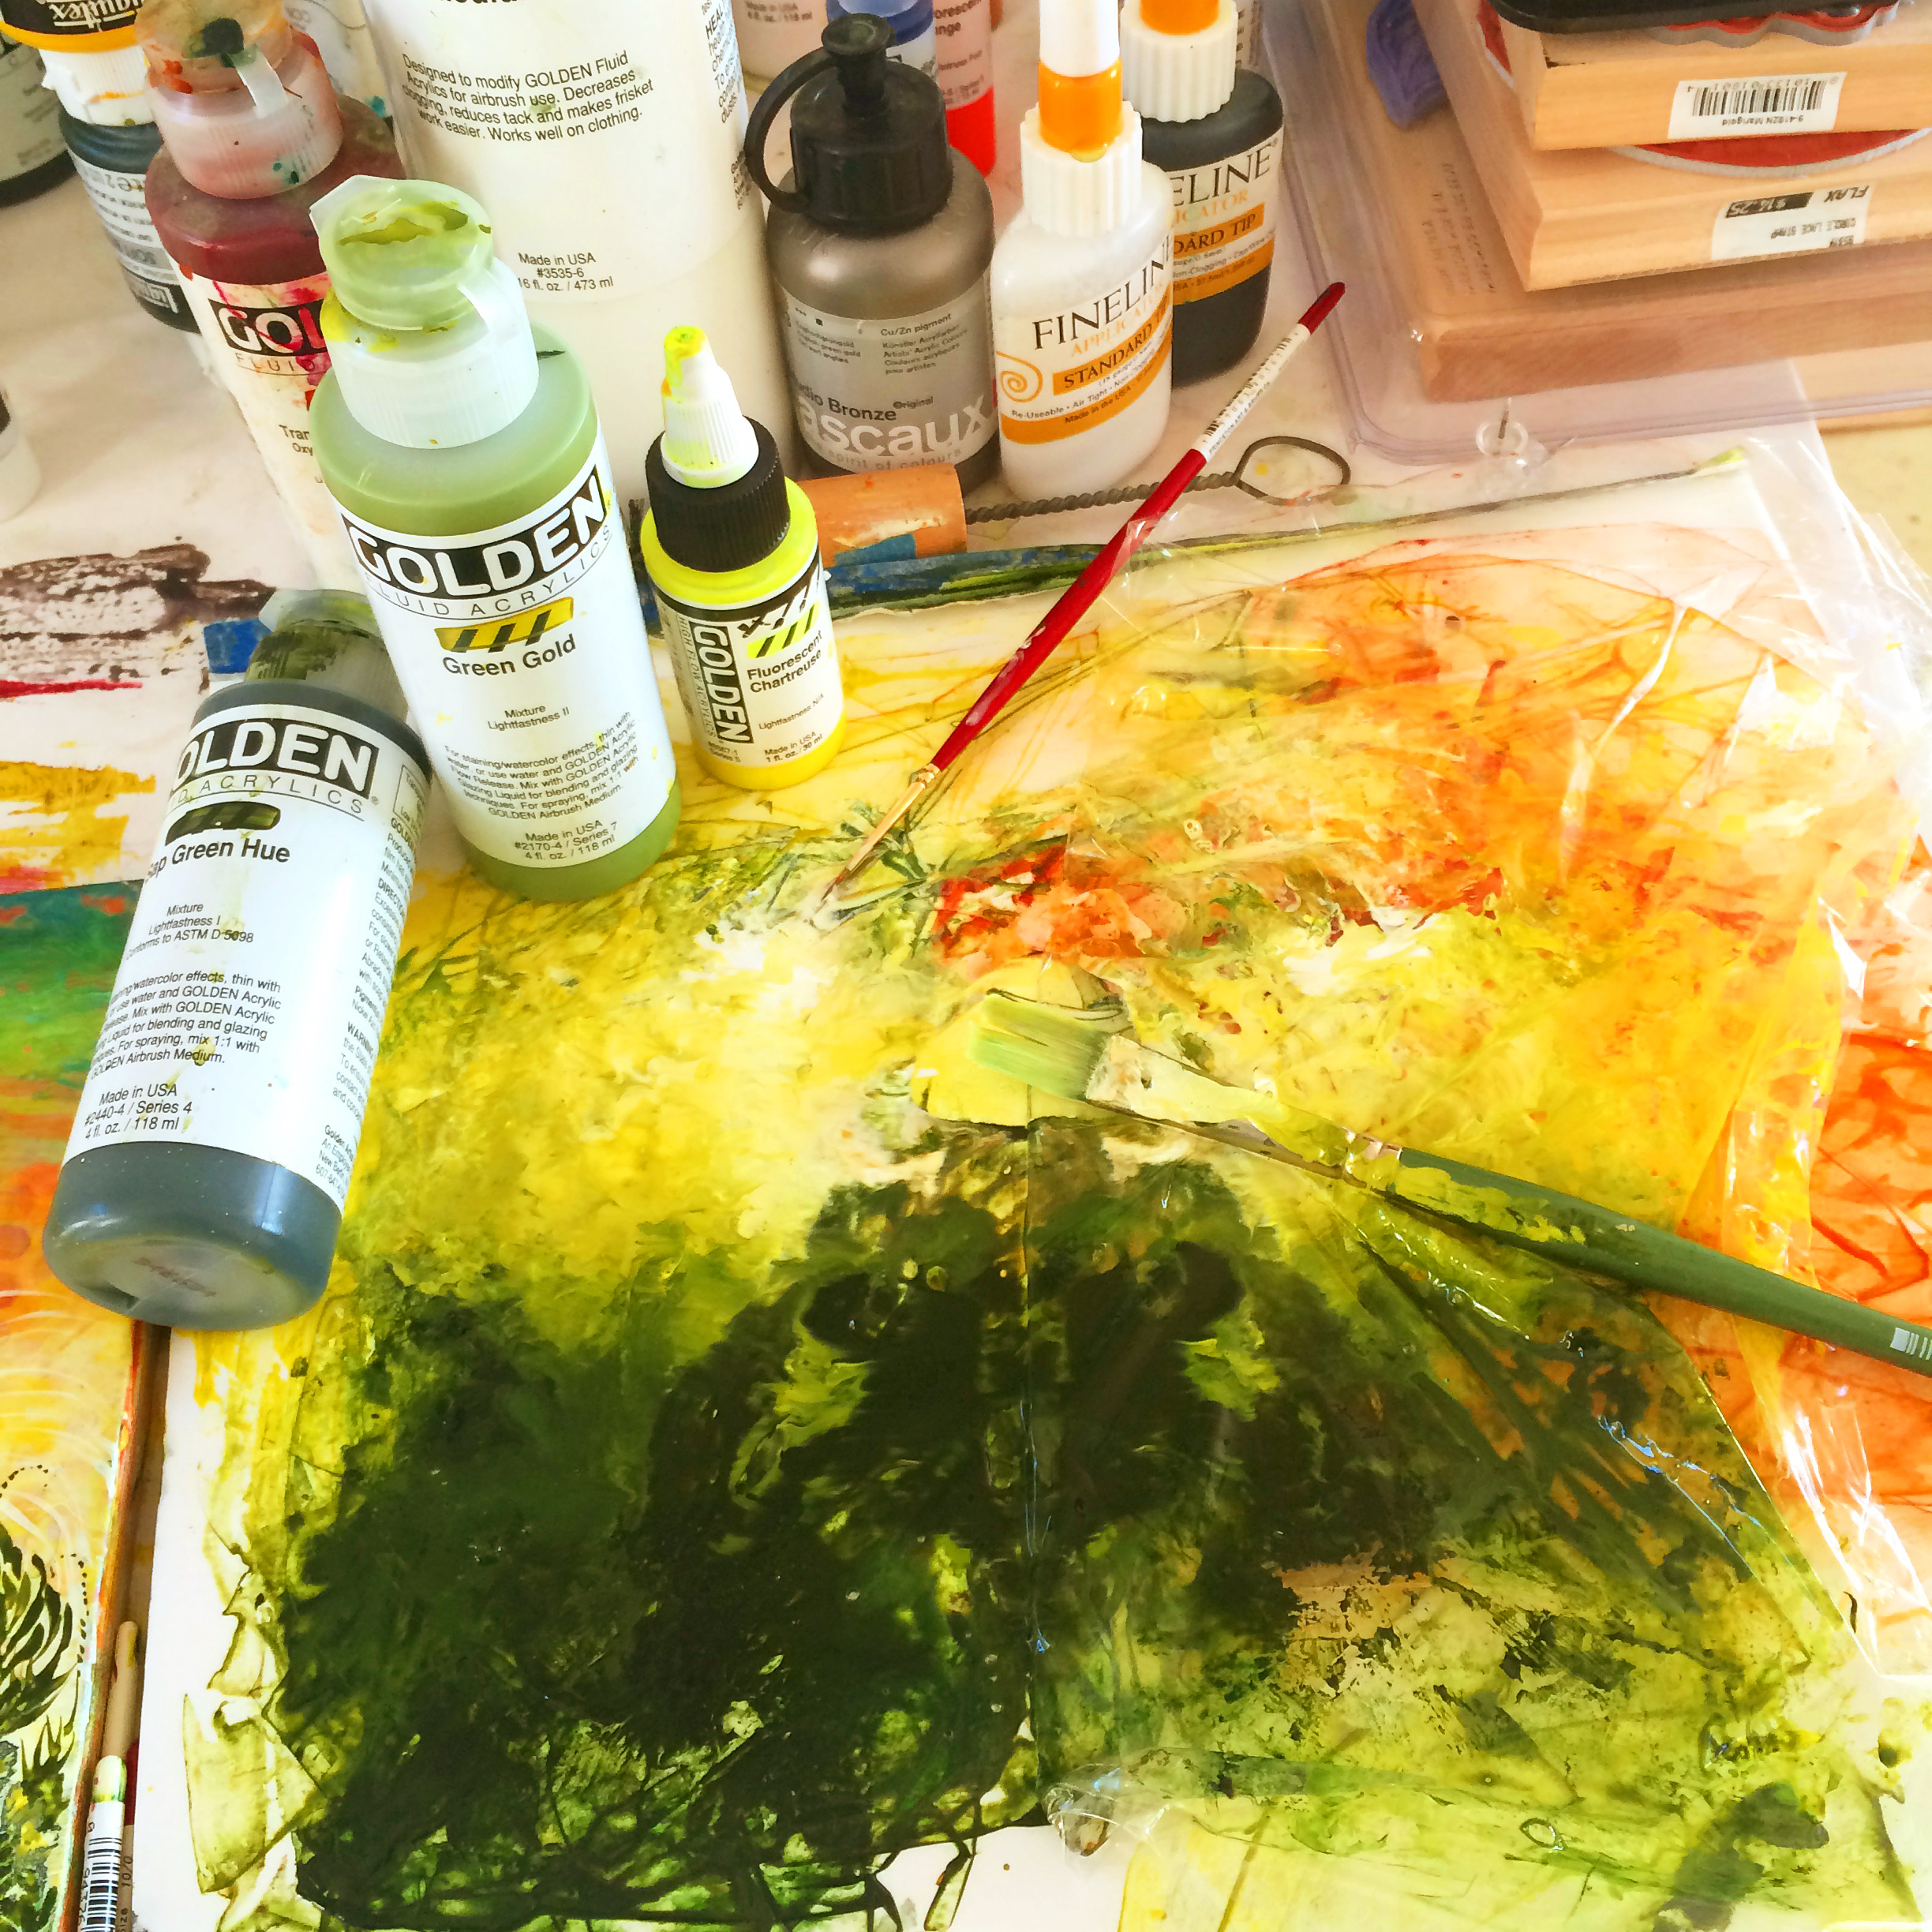 Palette in Carrie's studio. Image courtesy of Carrie Lederer.